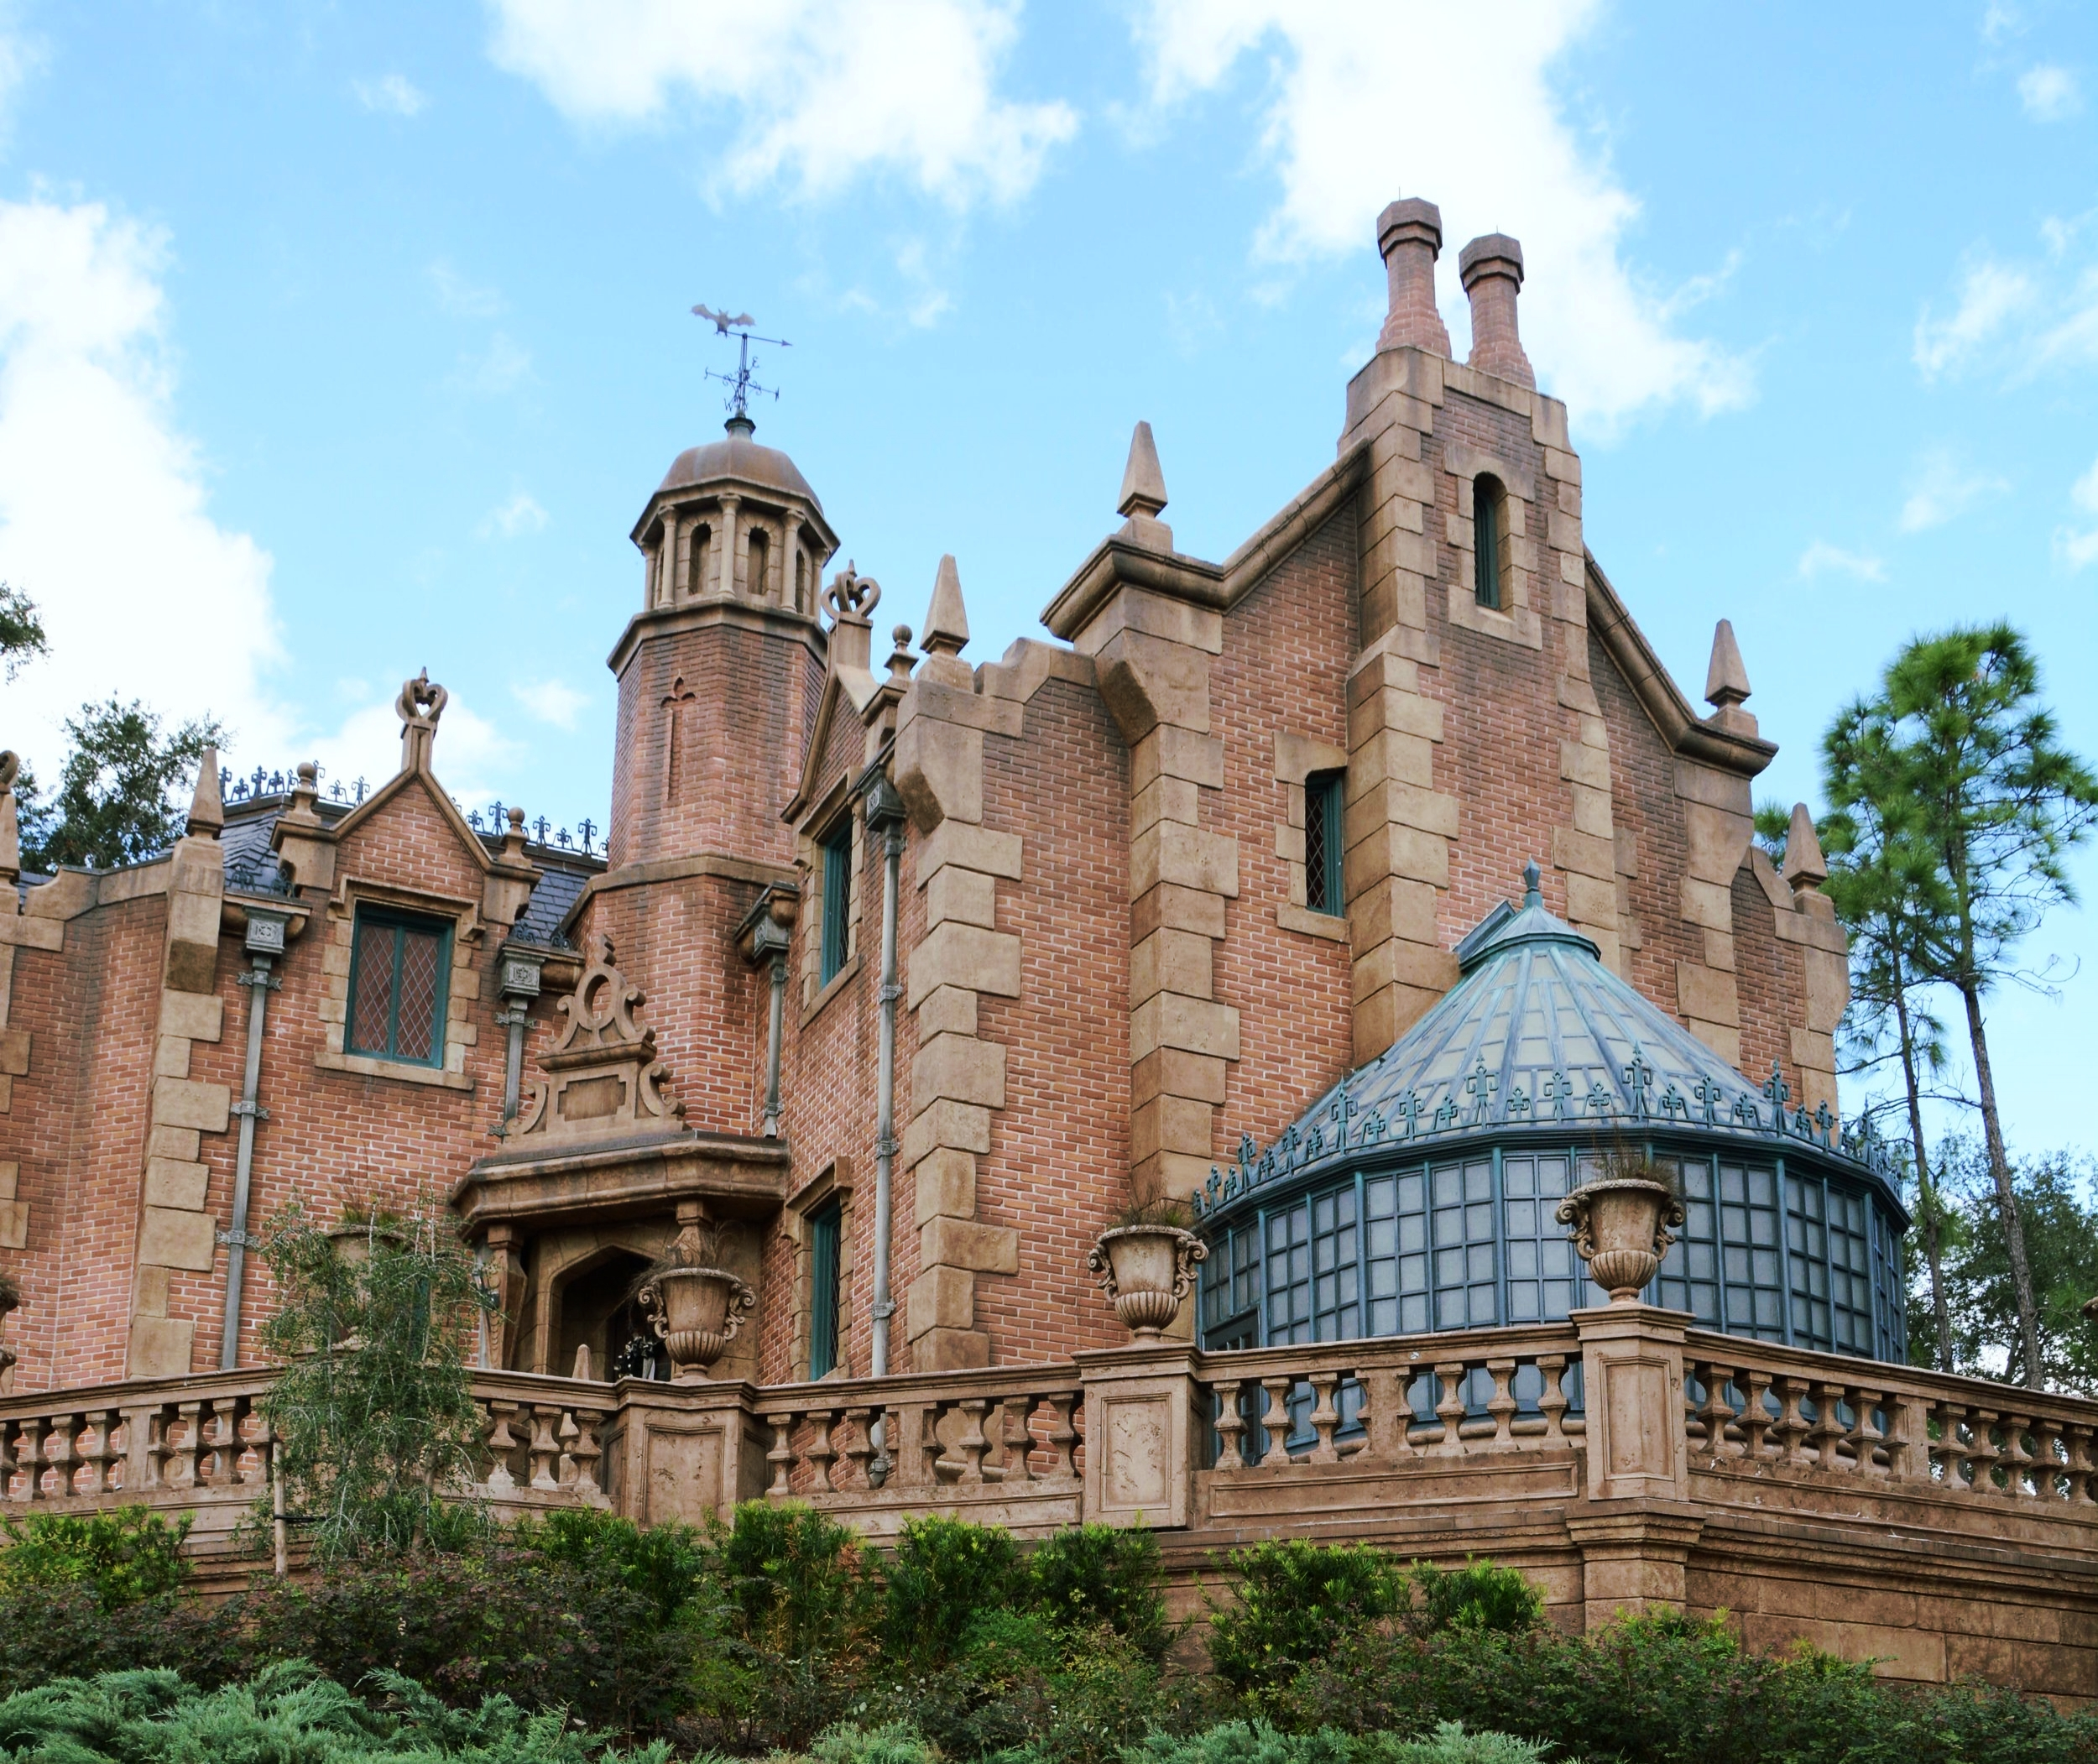 The second ride that we will ALWAYS stand in line for is The Haunted Mansion.